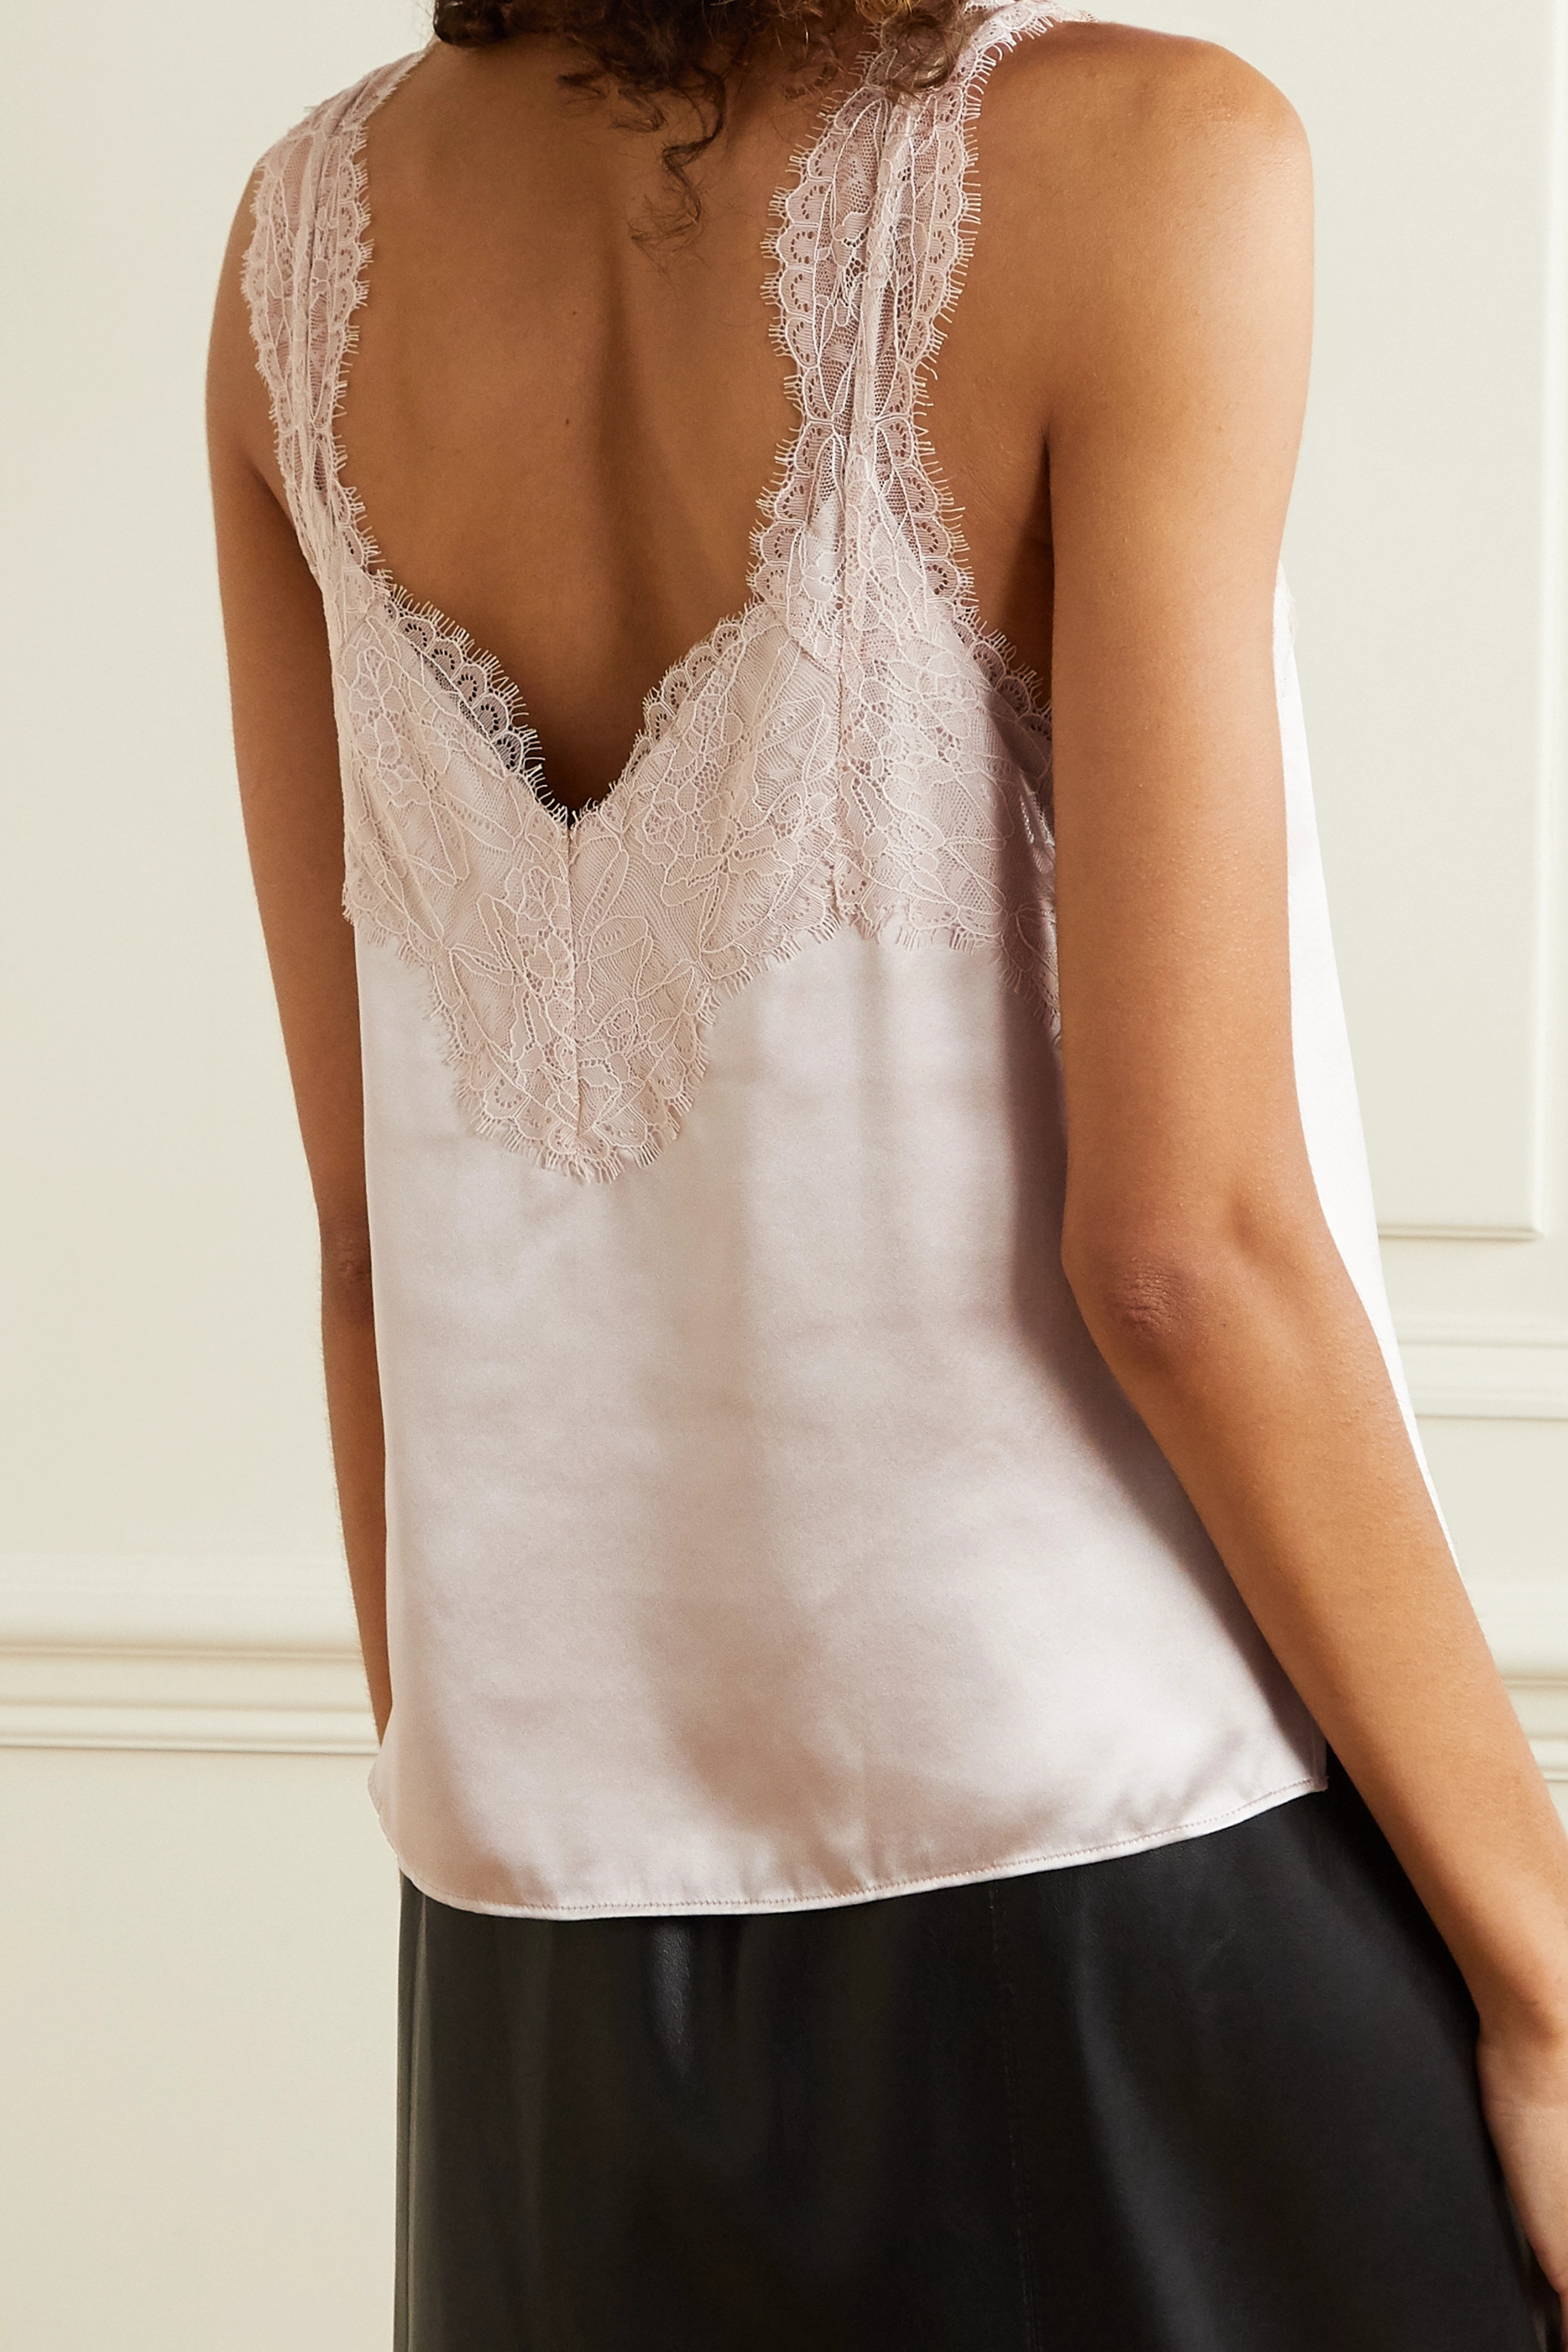 Cami NYC The Brandice lace-trimmed silk-charmeuse camisole